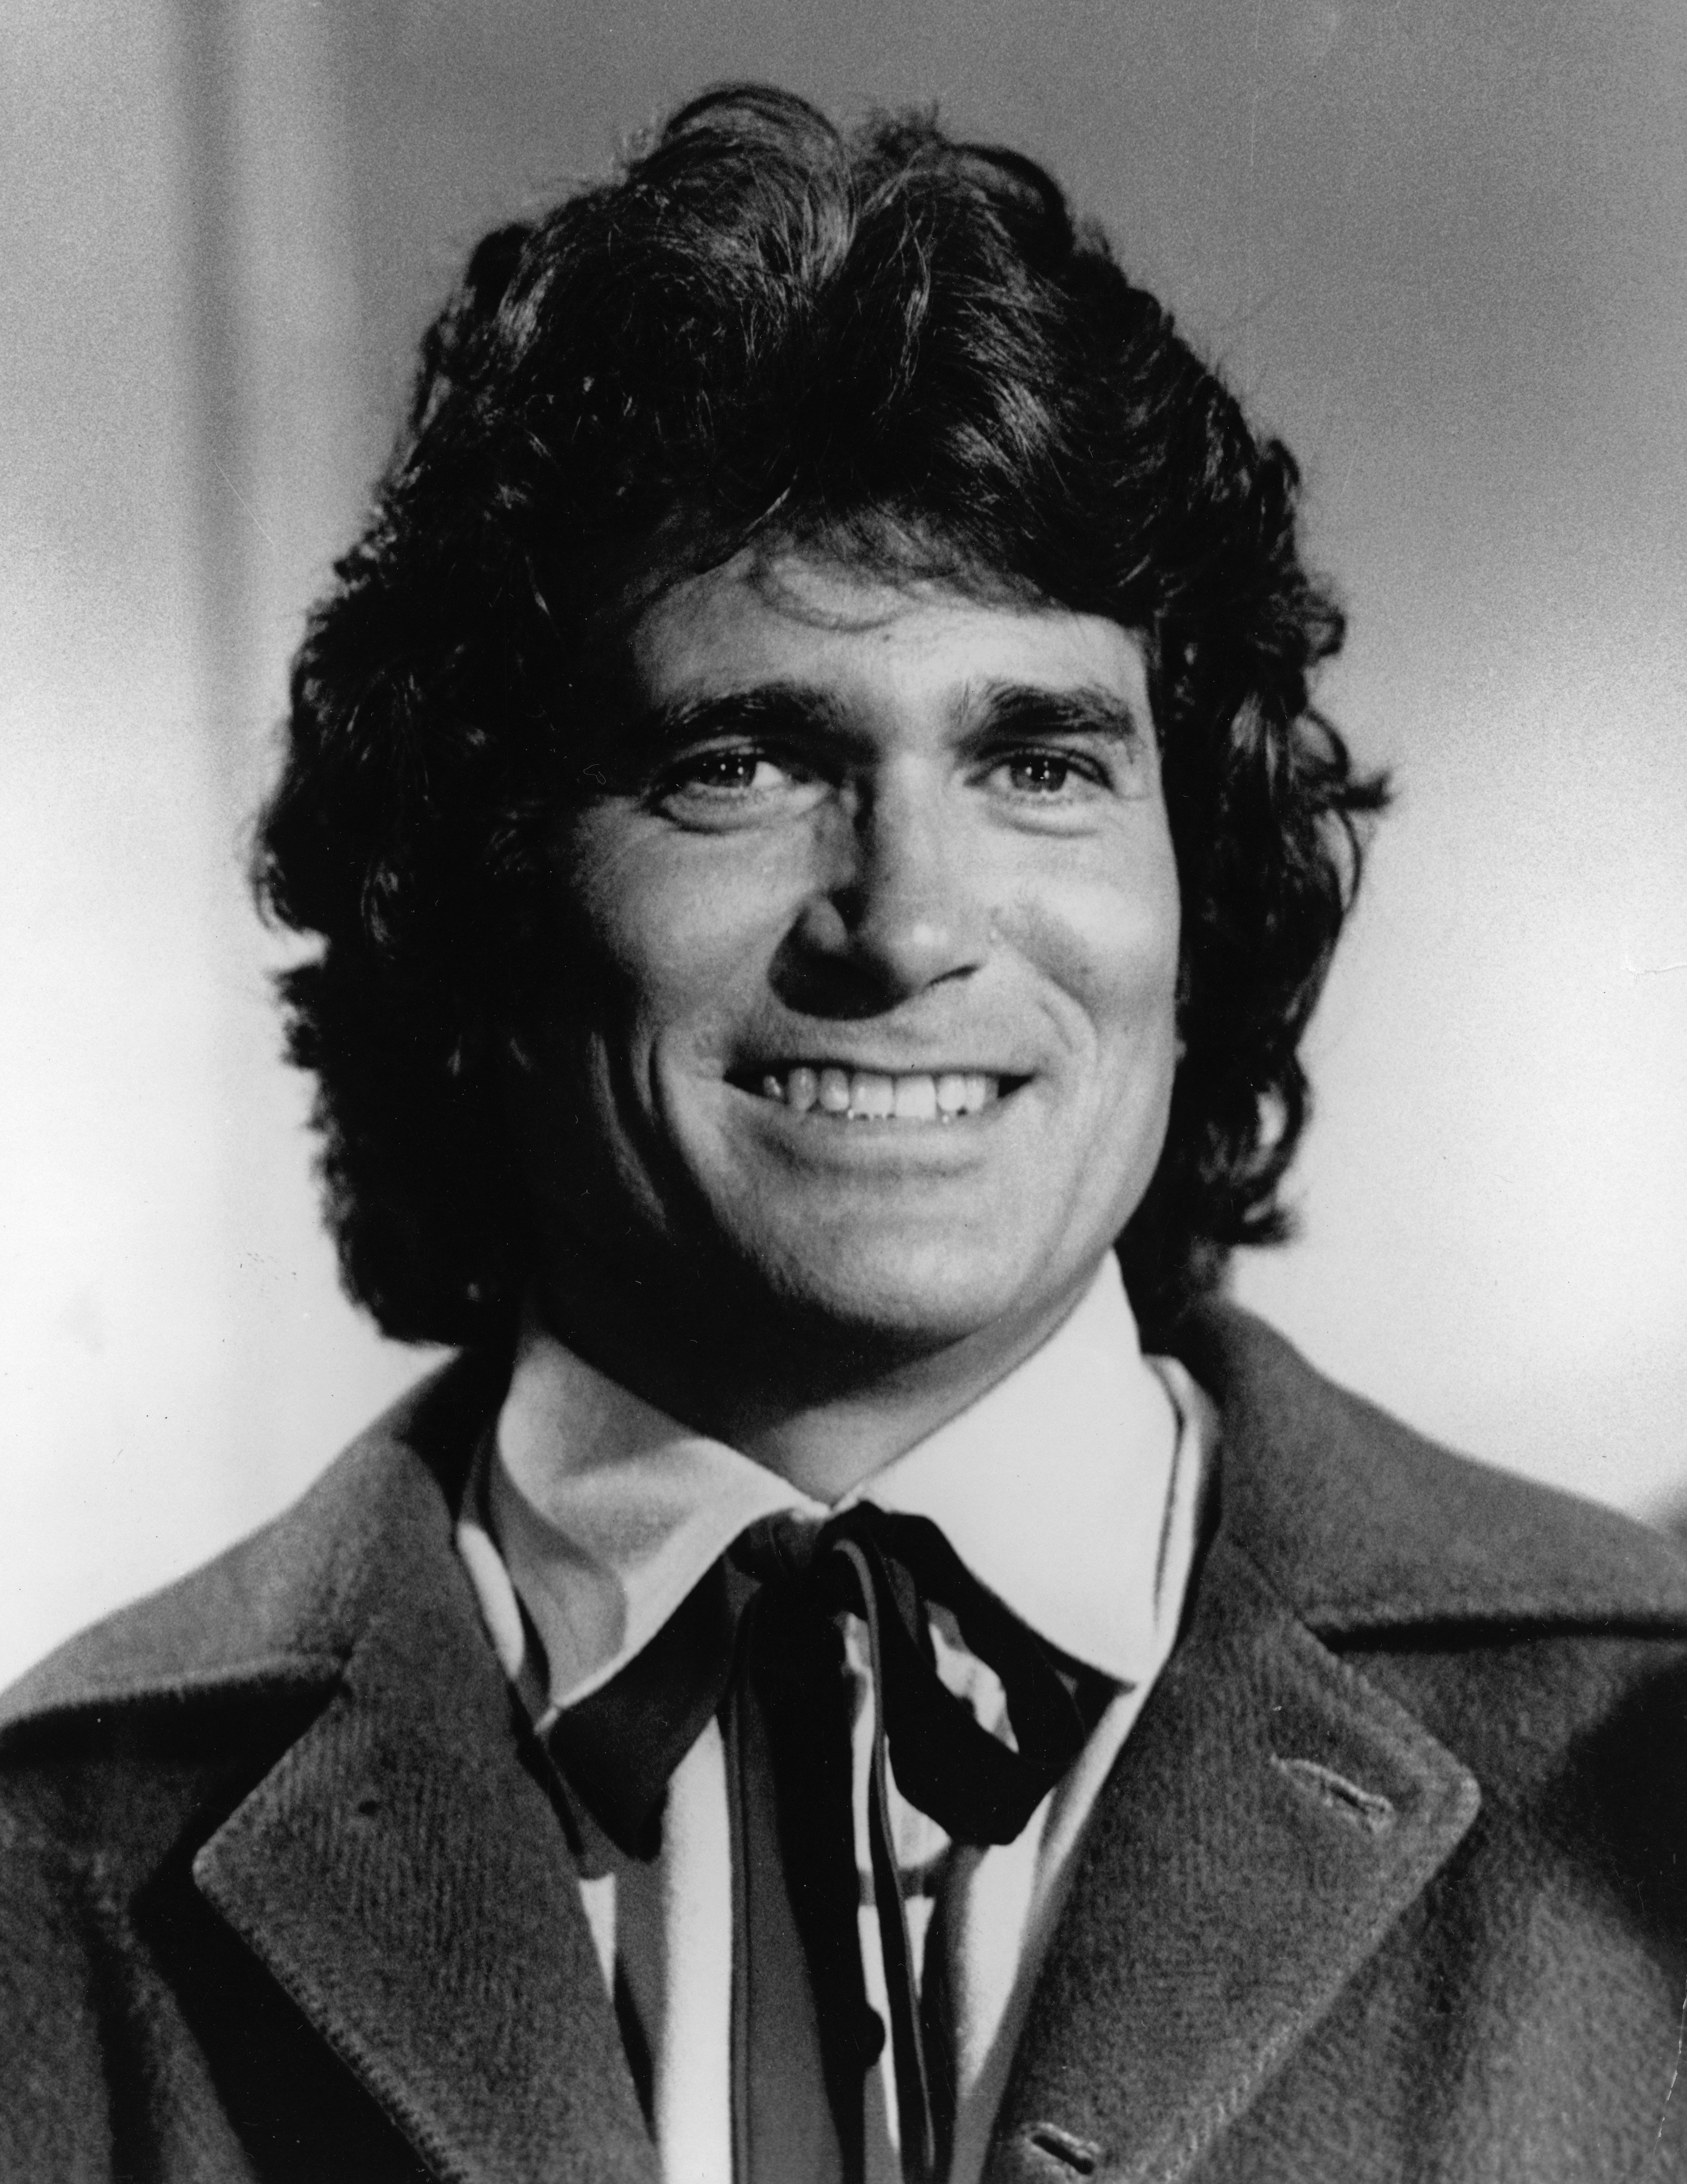 Headshot of American actor Michael Landon (1936 - 1991) from the television series, 'The Little House On The Prairie' | Photo: GettyImages